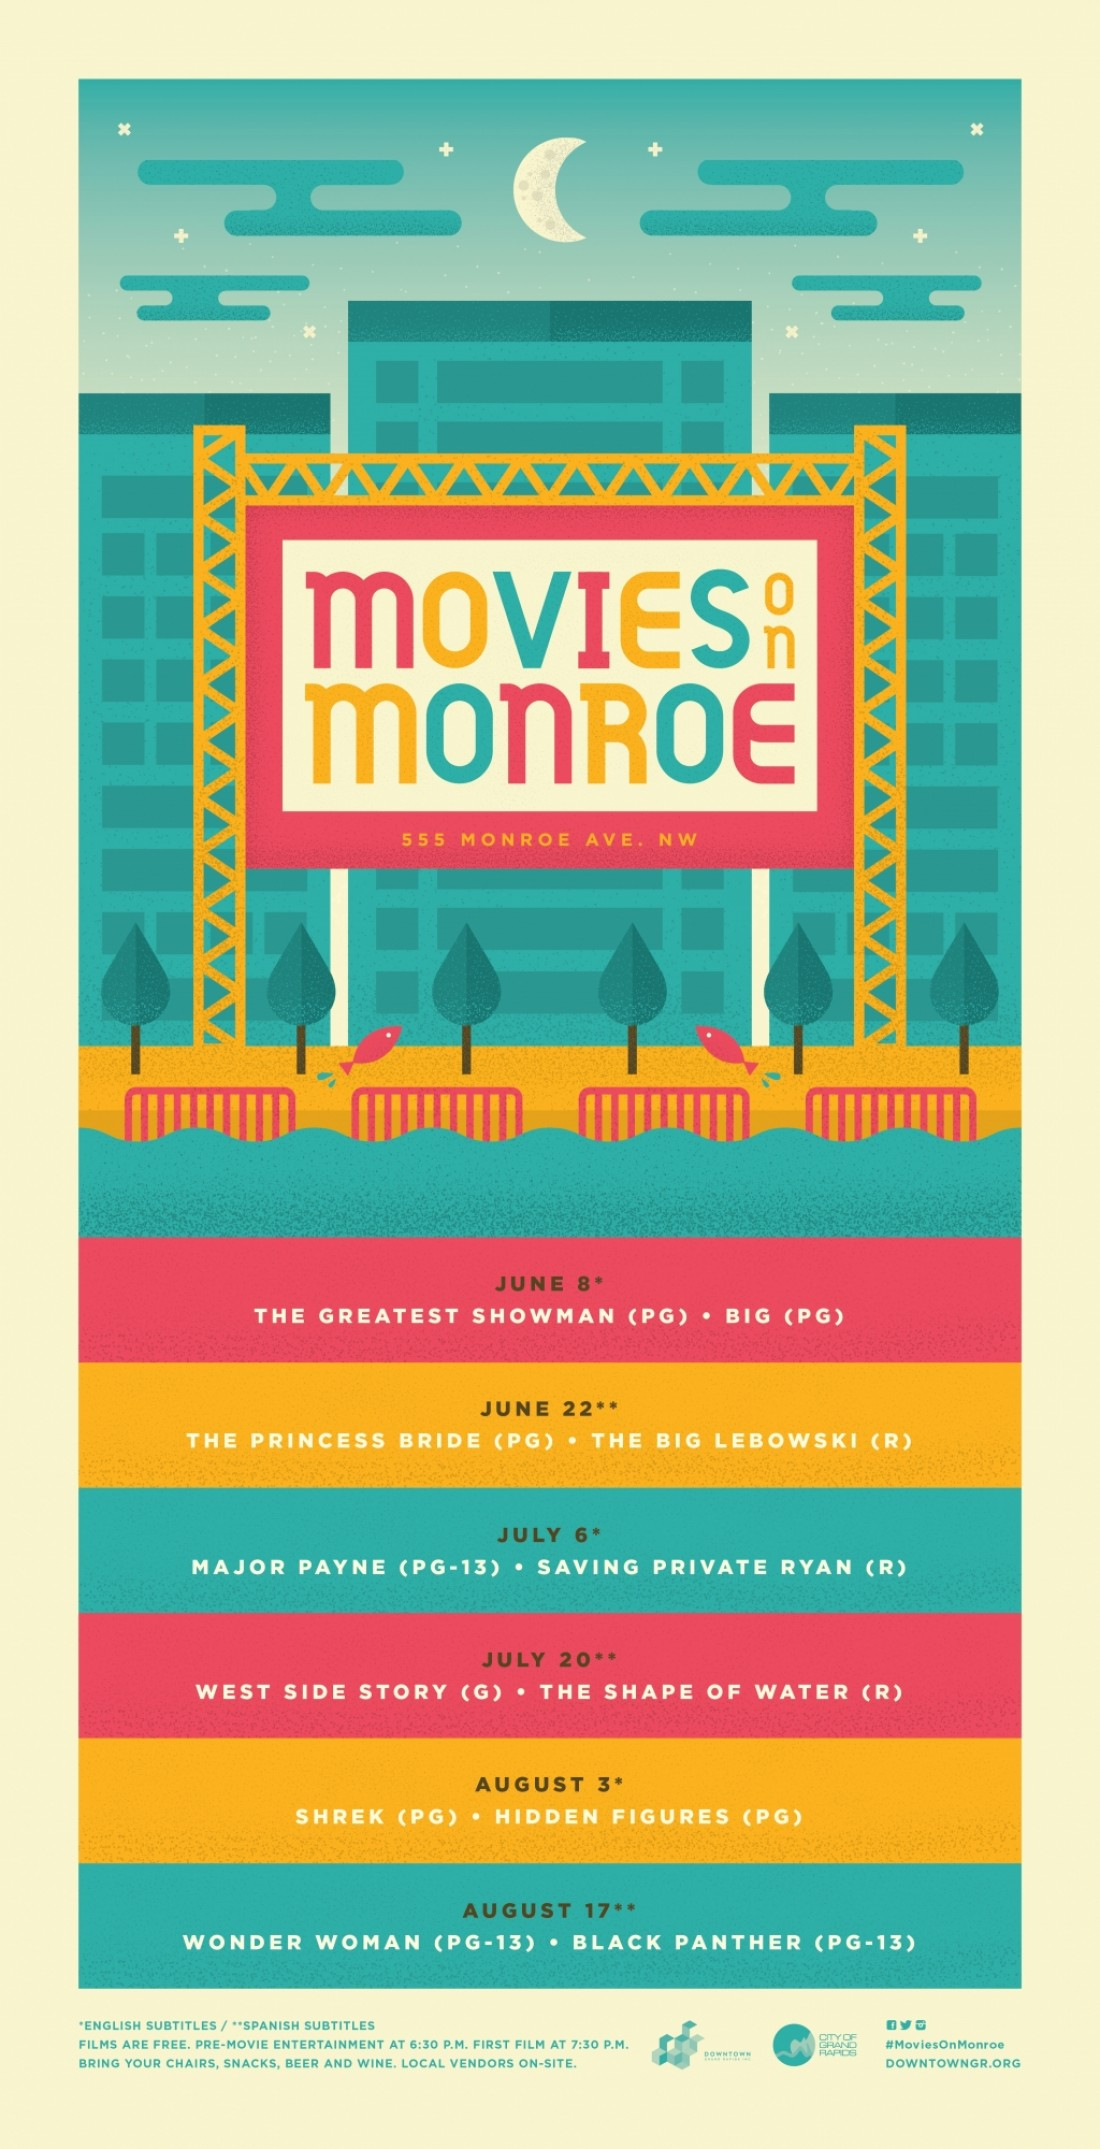 Movies_On_Monroe_Poster_English-01.jpg